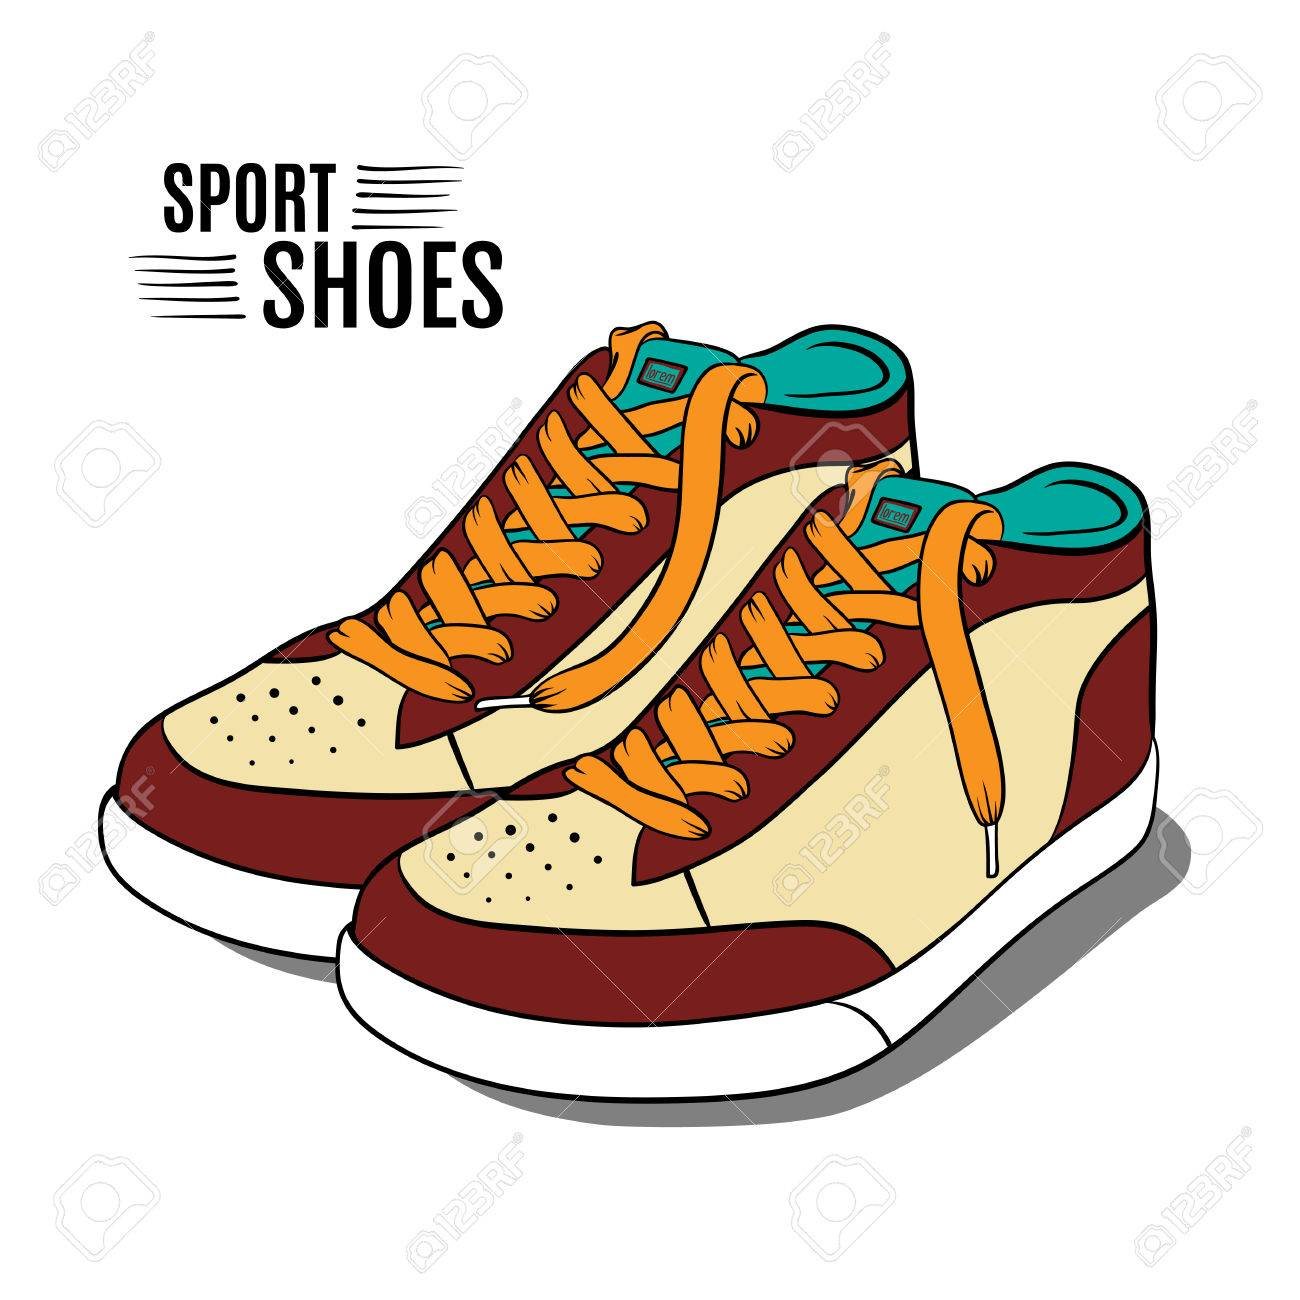 cartoon sport shoes vector illustration royalty free cliparts